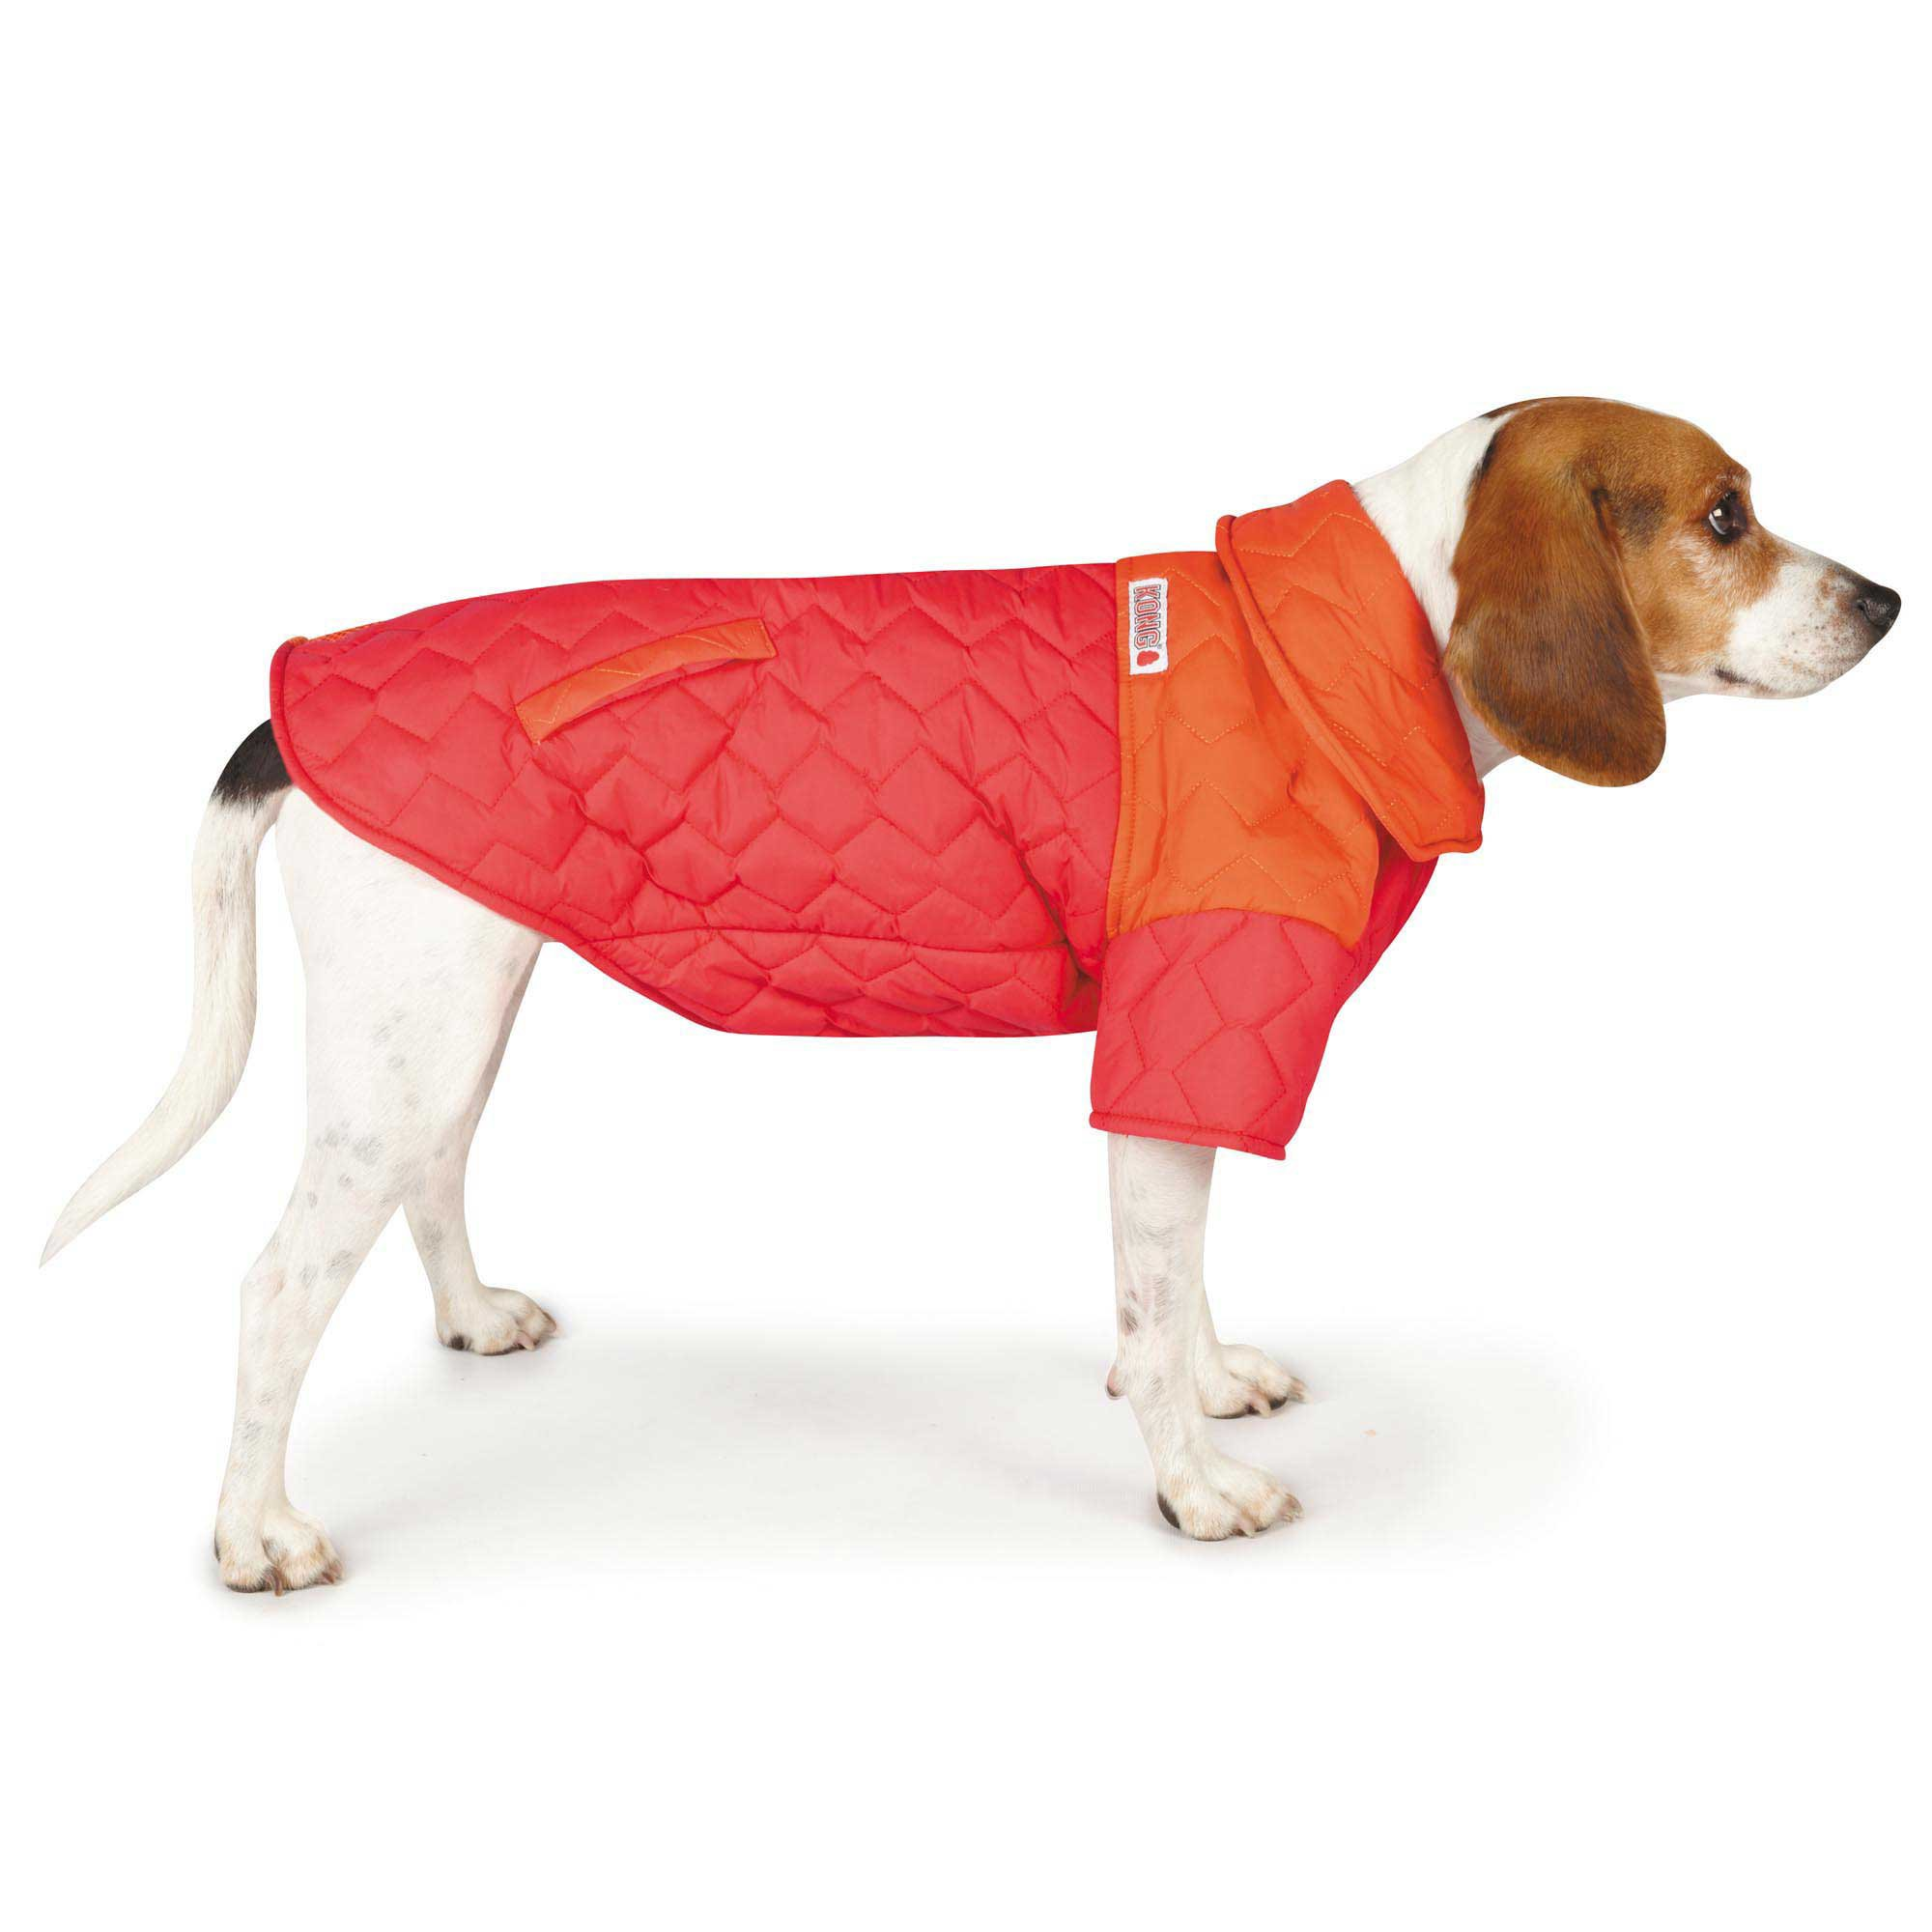 KONG Quilted LED Puffy Red Dog Coat